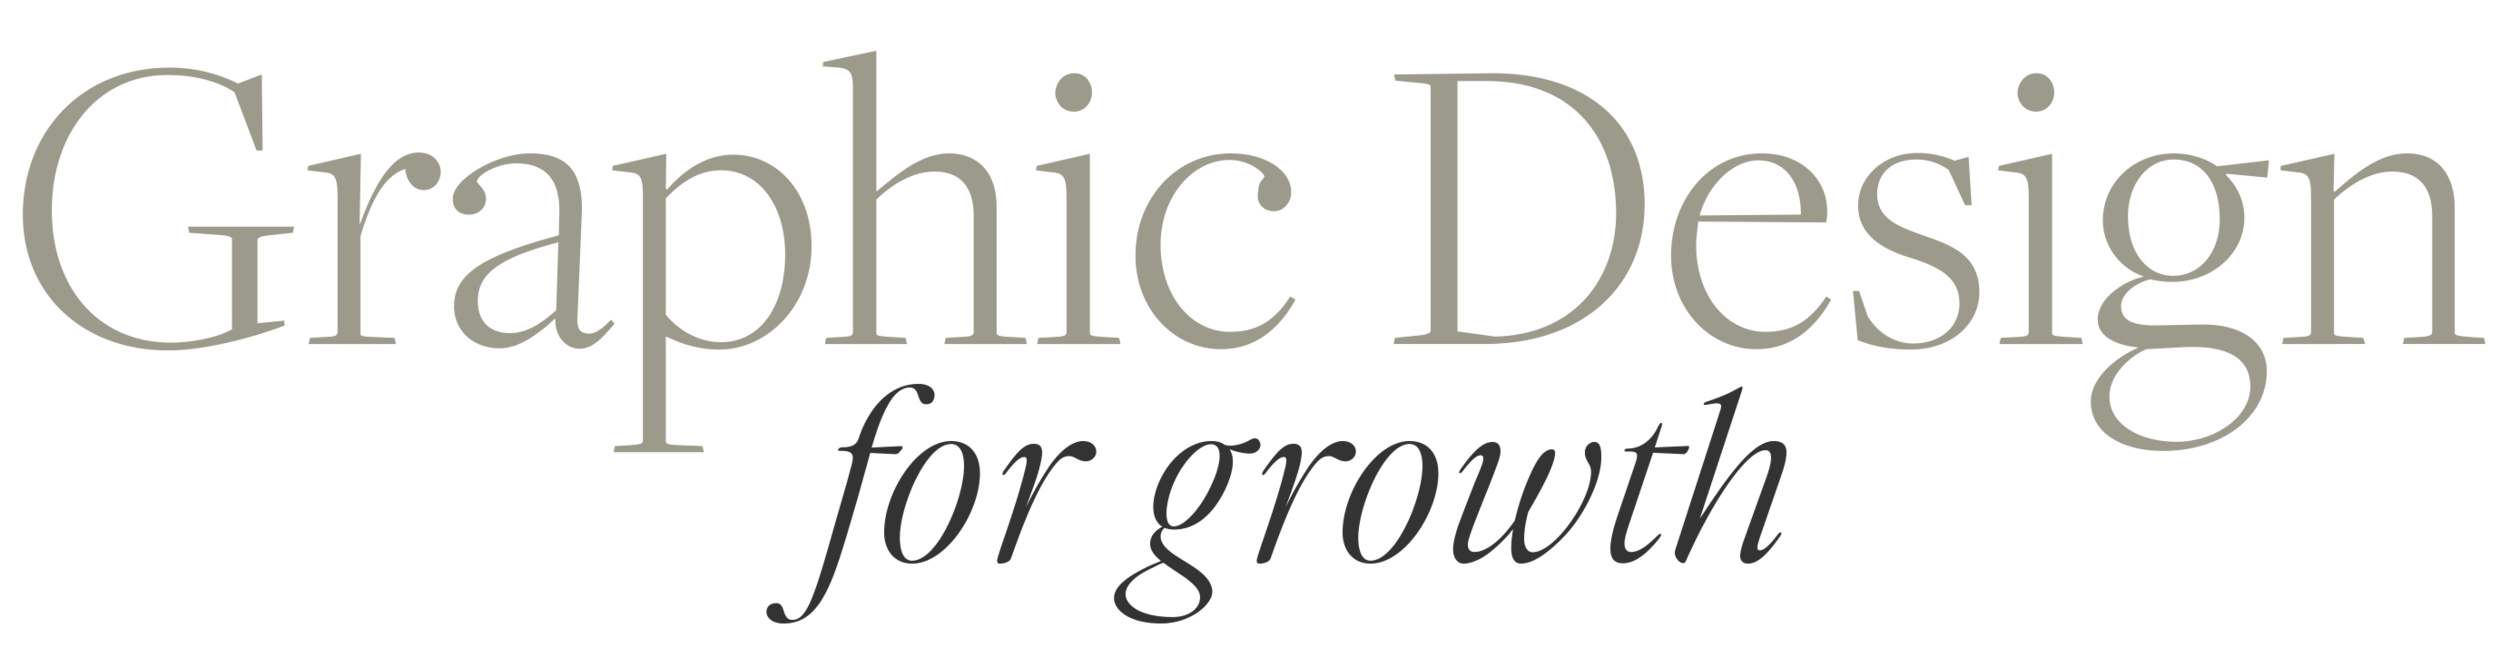 brand design for growth.png